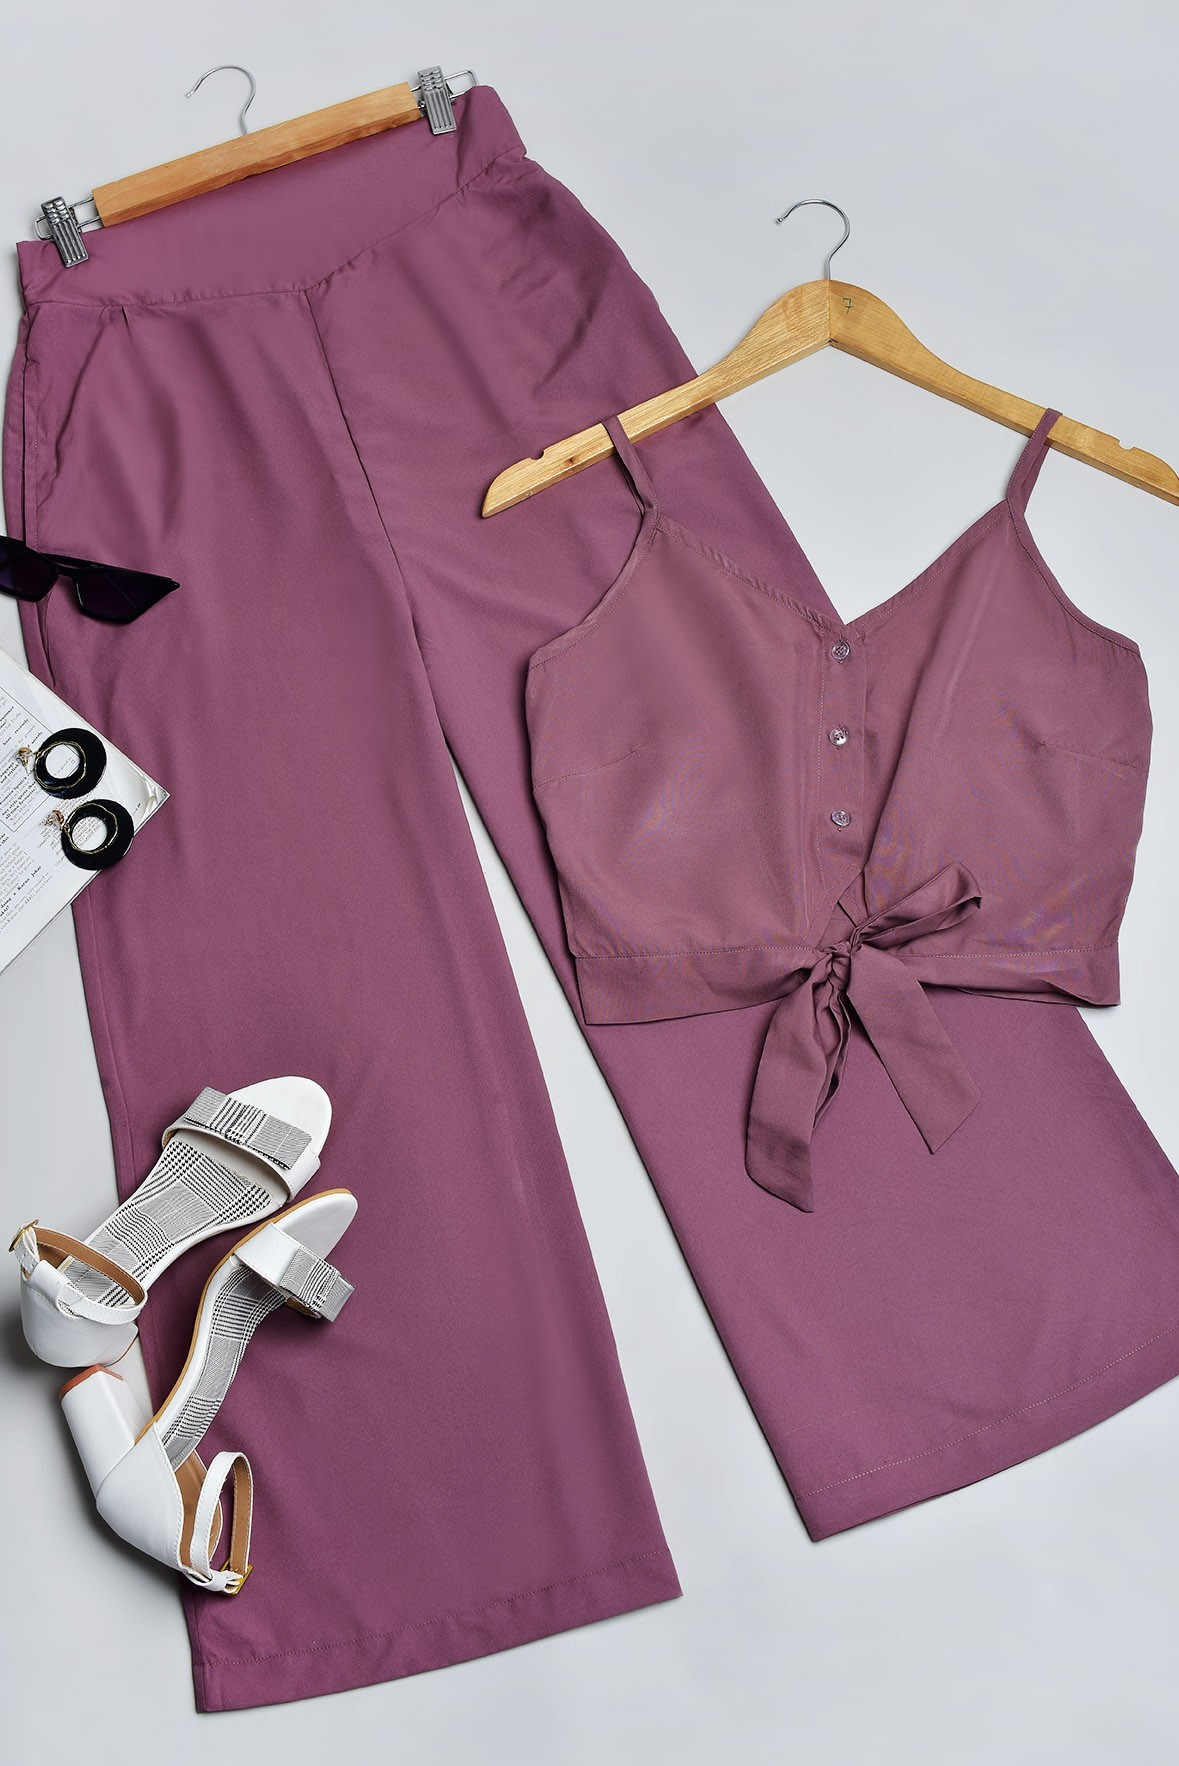 Set of 2 - Happy Monday Outfit